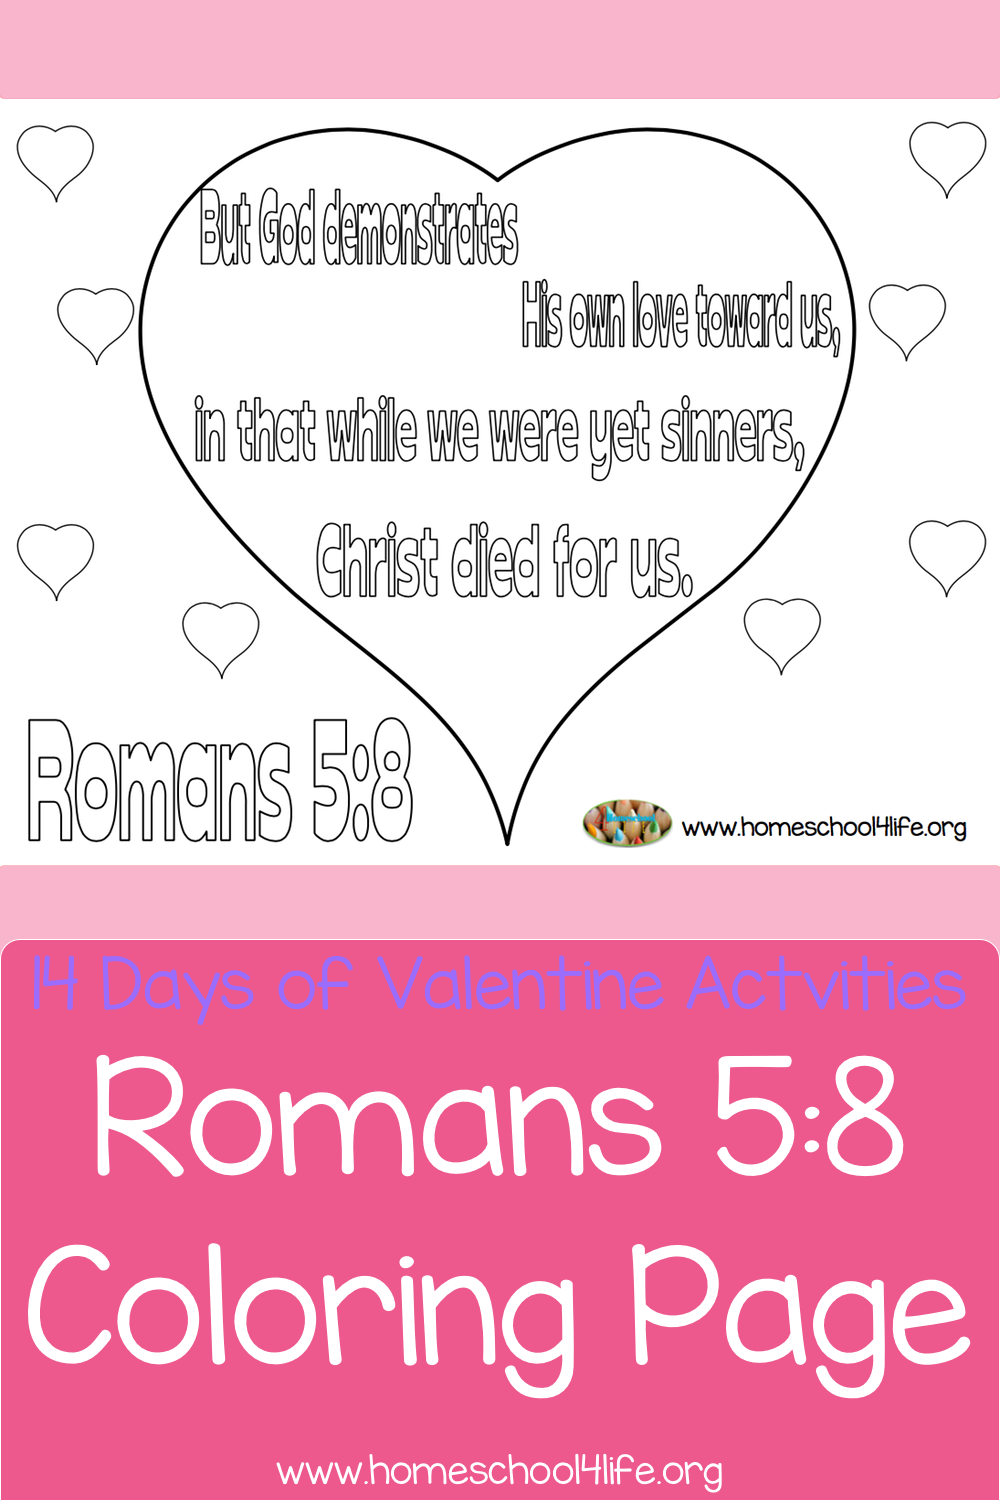 romans 58 coloring page homeschool4lifeorg where homeschooling is a way of life - Romans 5 8 Coloring Page